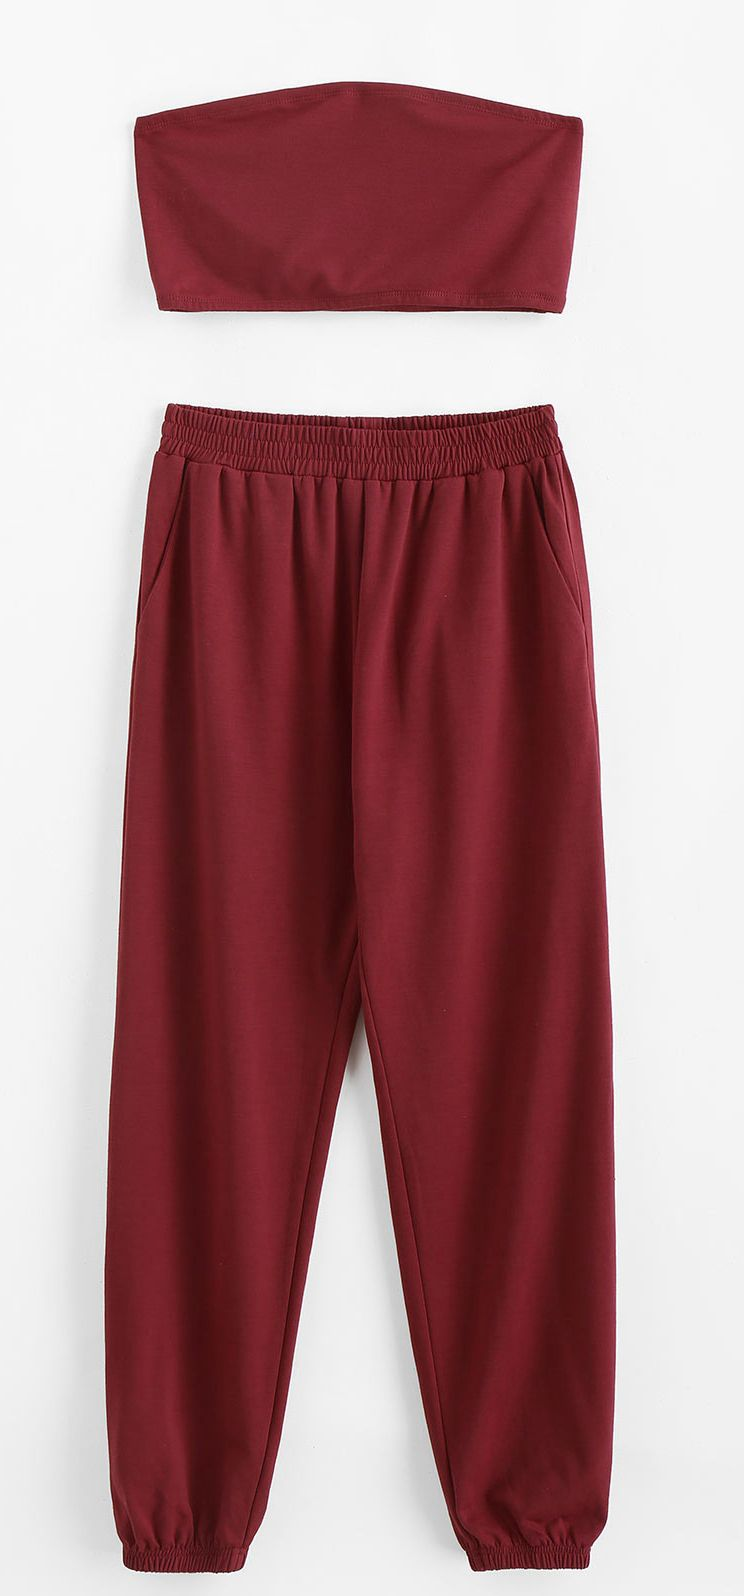 Bandeau Pocket Two Piece Sweat Jogger Pants Set Red Wine Two Piece Outfit Simple Summer Outfits Crop Top Outfits